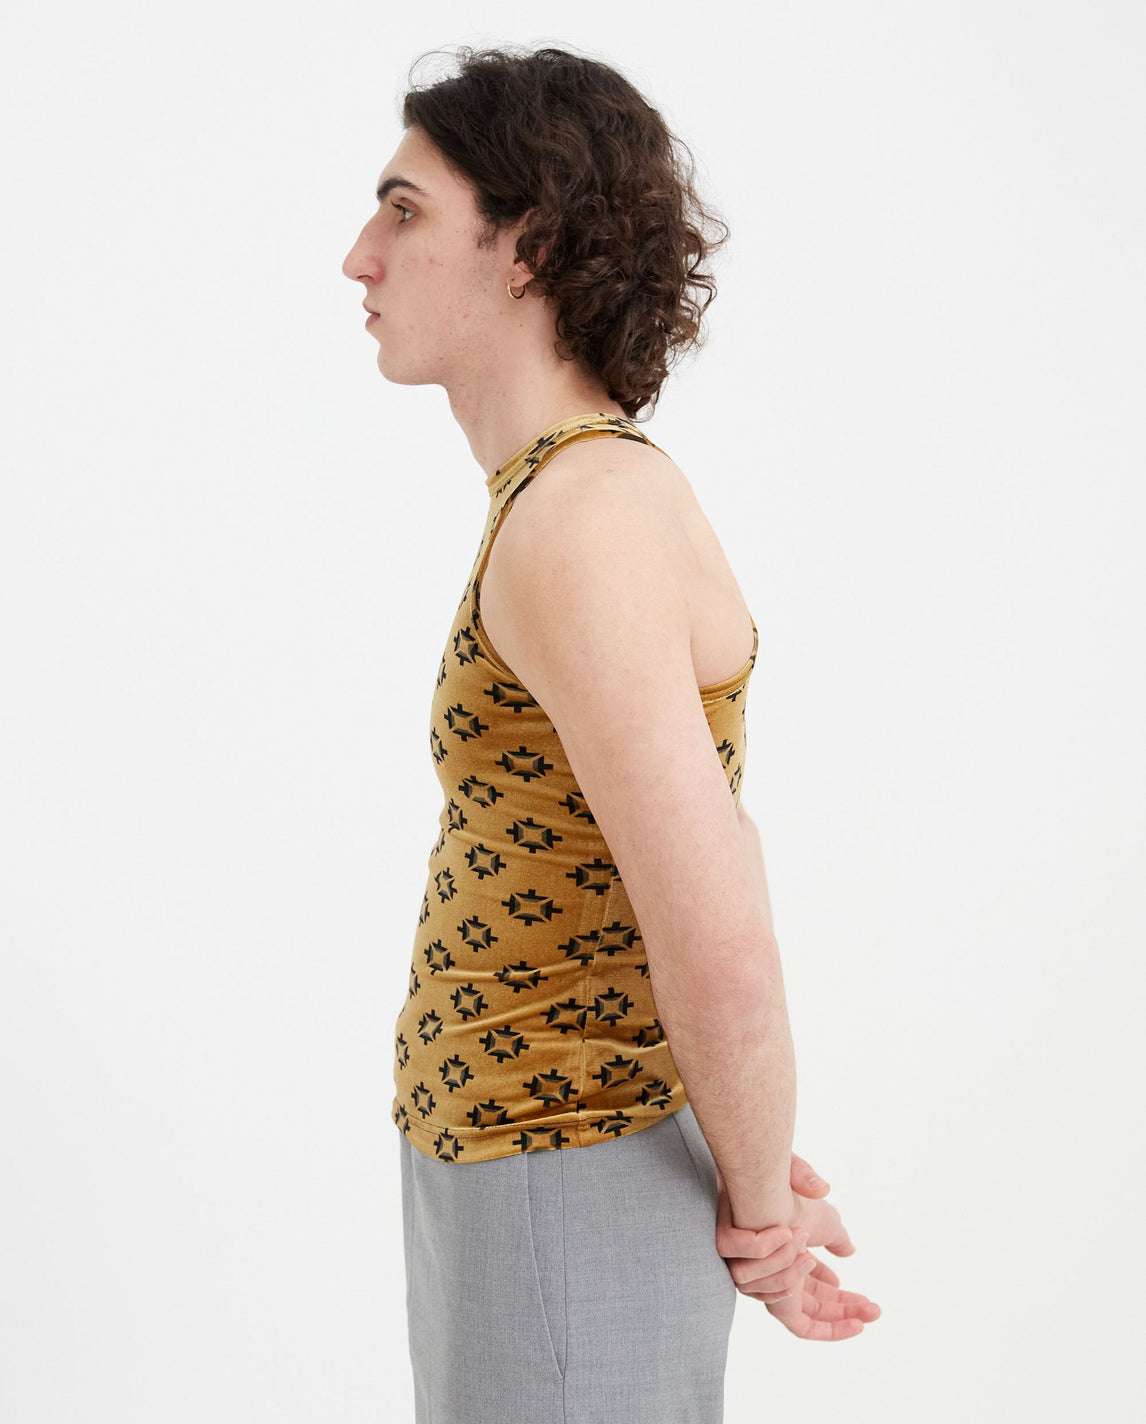 Brick Print Velvet Vest - Gold MENS Pronounce